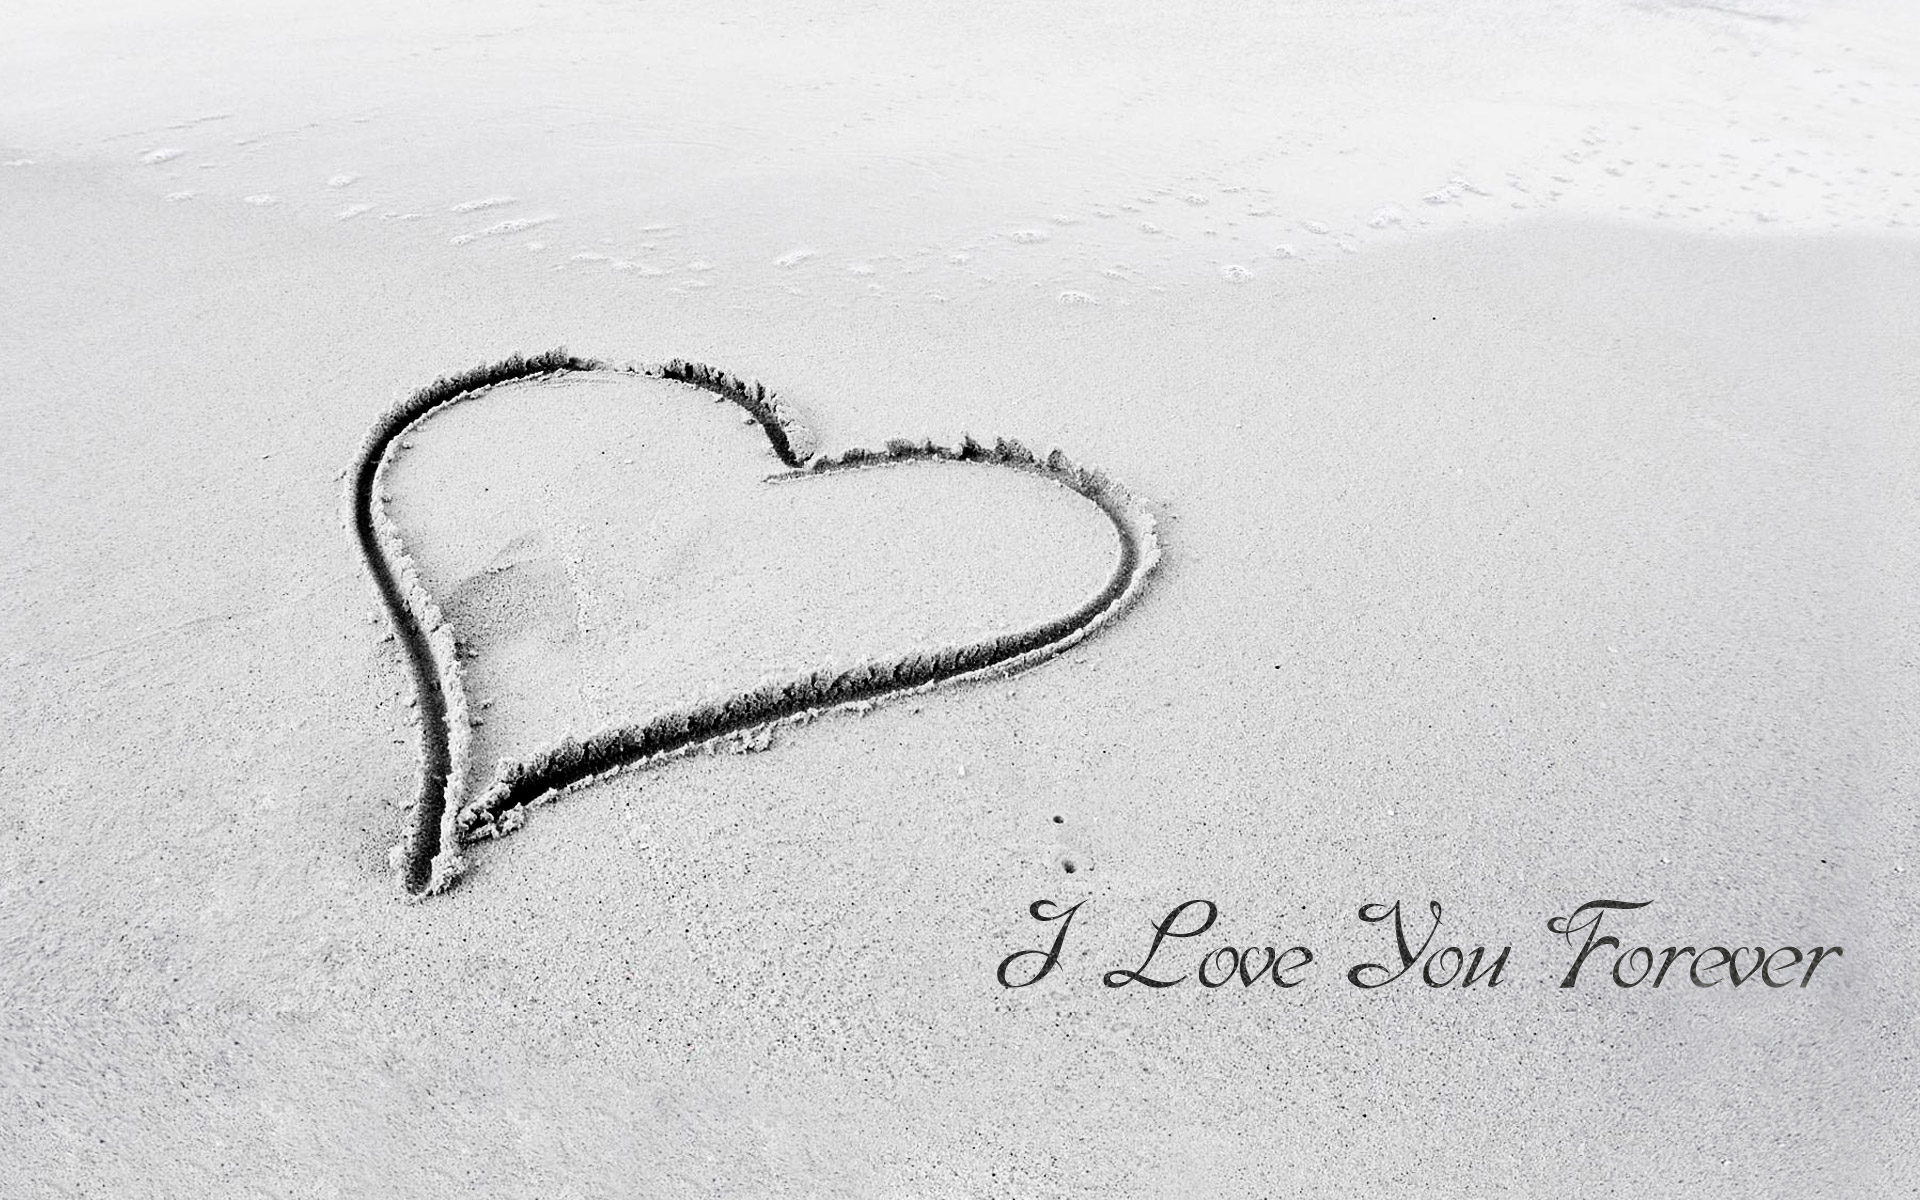 I-Love-You-Forever-Greetings-Wallpaper